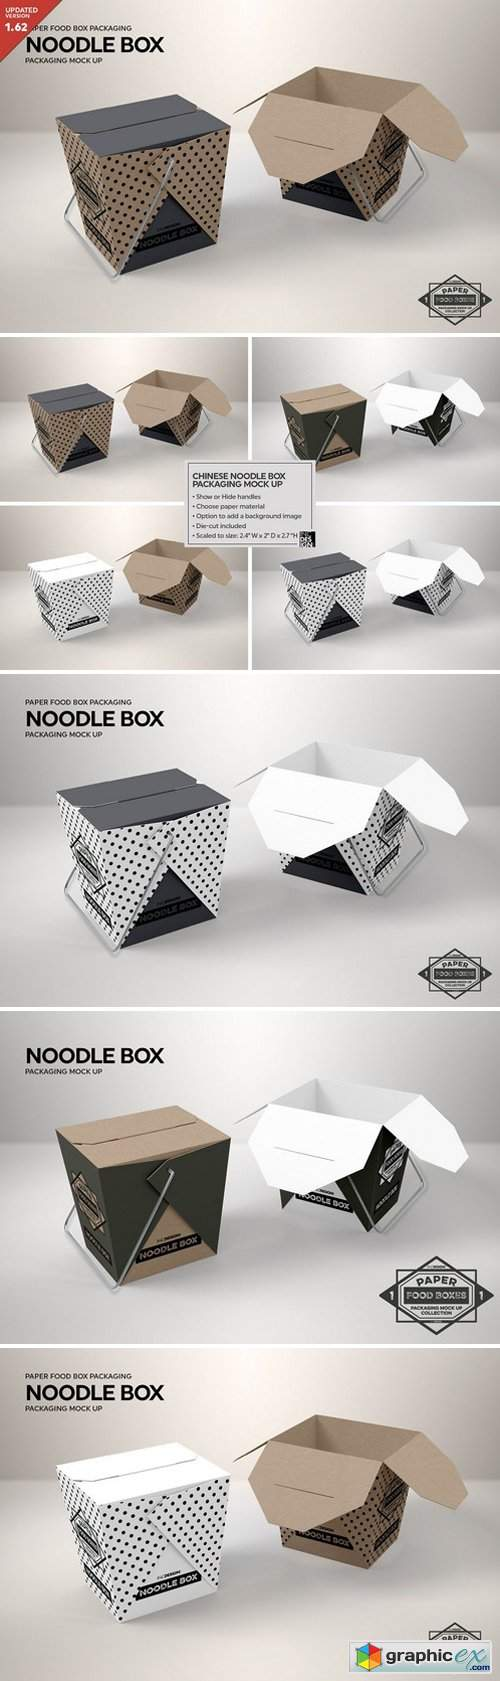 Noodle Box Packaging Mockup